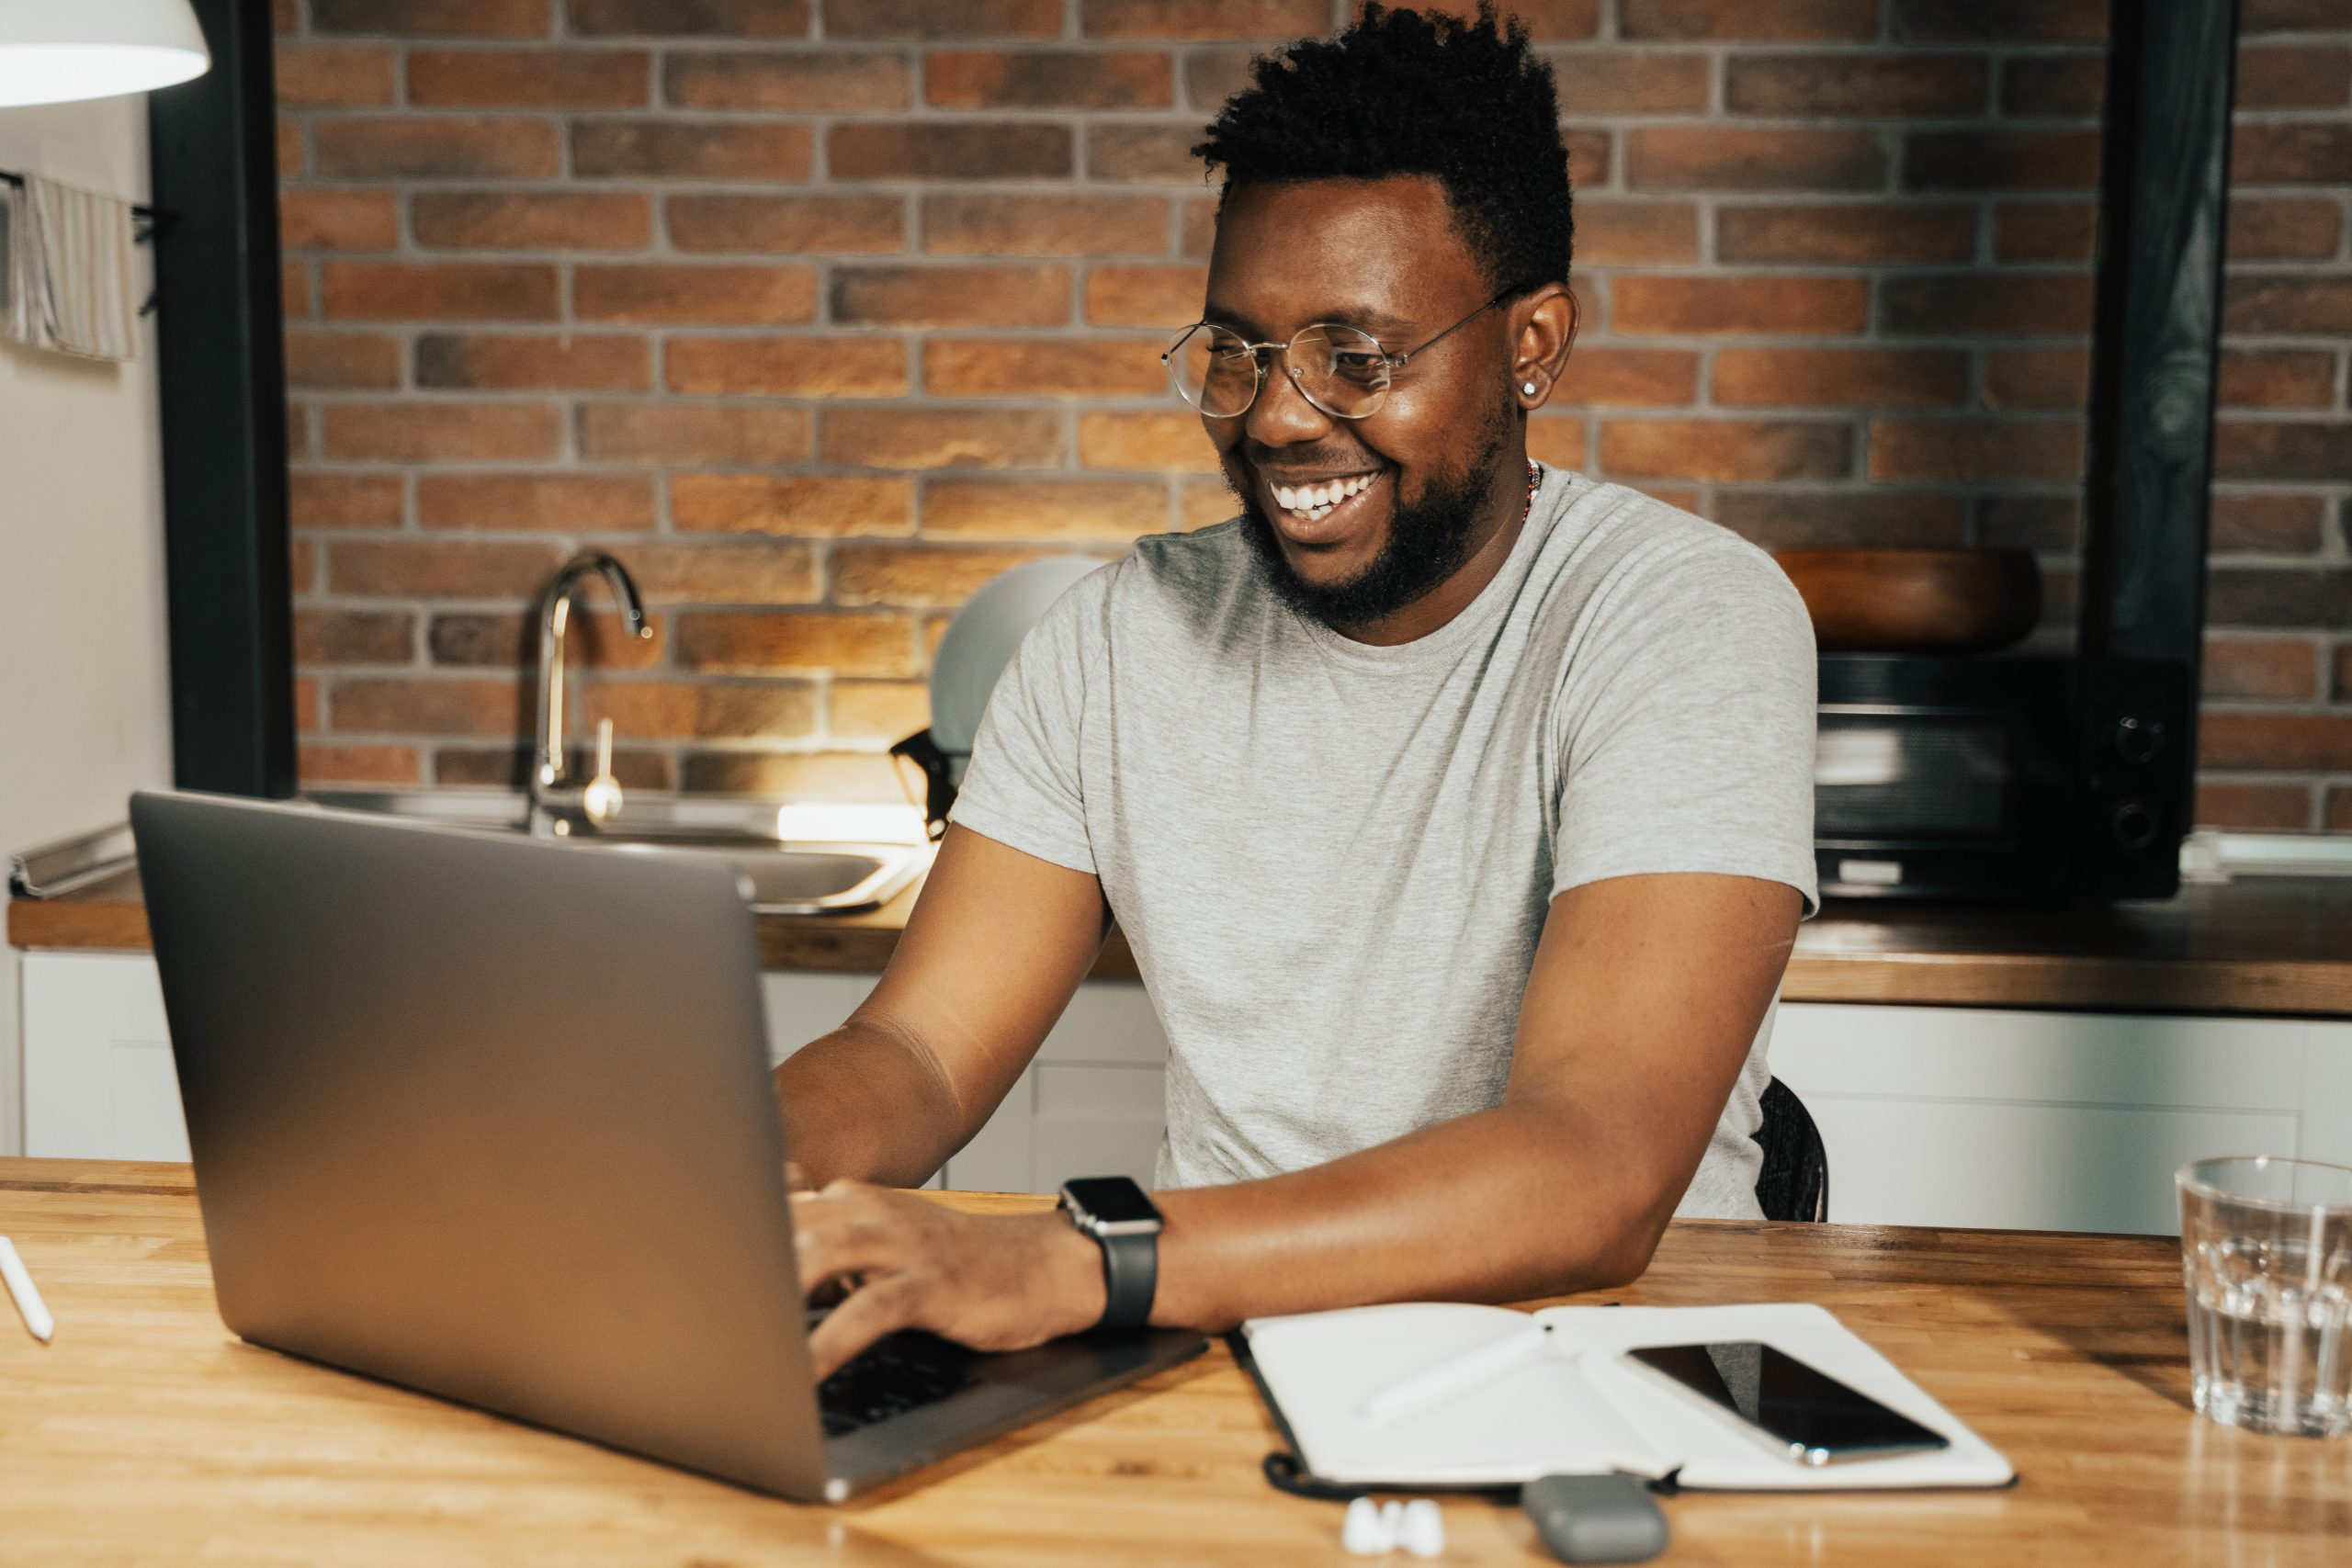 smiling man using laptop computer in his home